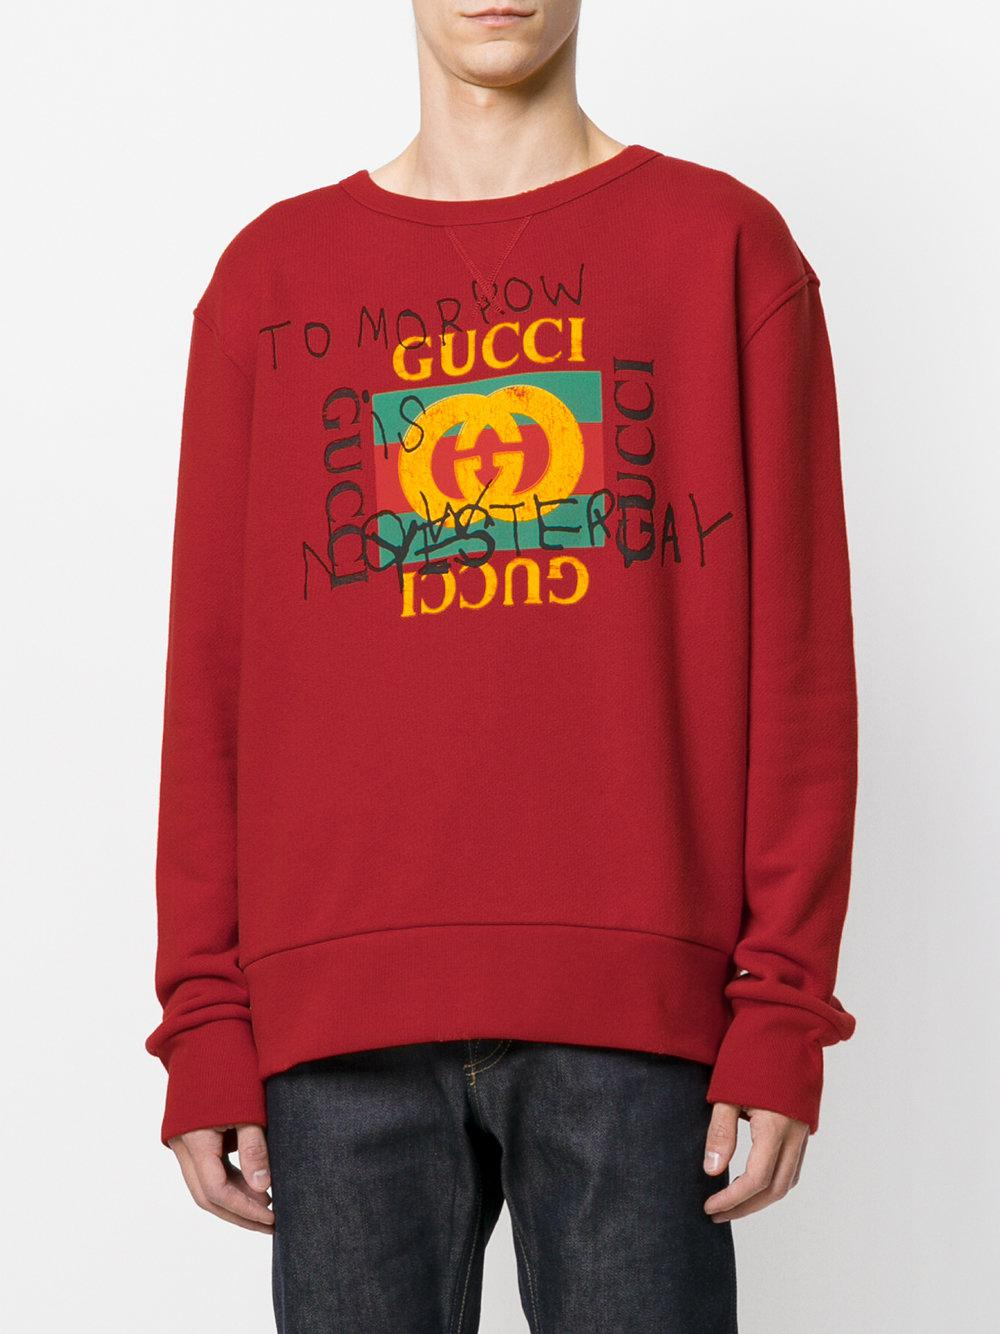 1ae5cb1a7675 Lyst - Gucci Coco Capitán Logo Sweatshirt in Red for Men